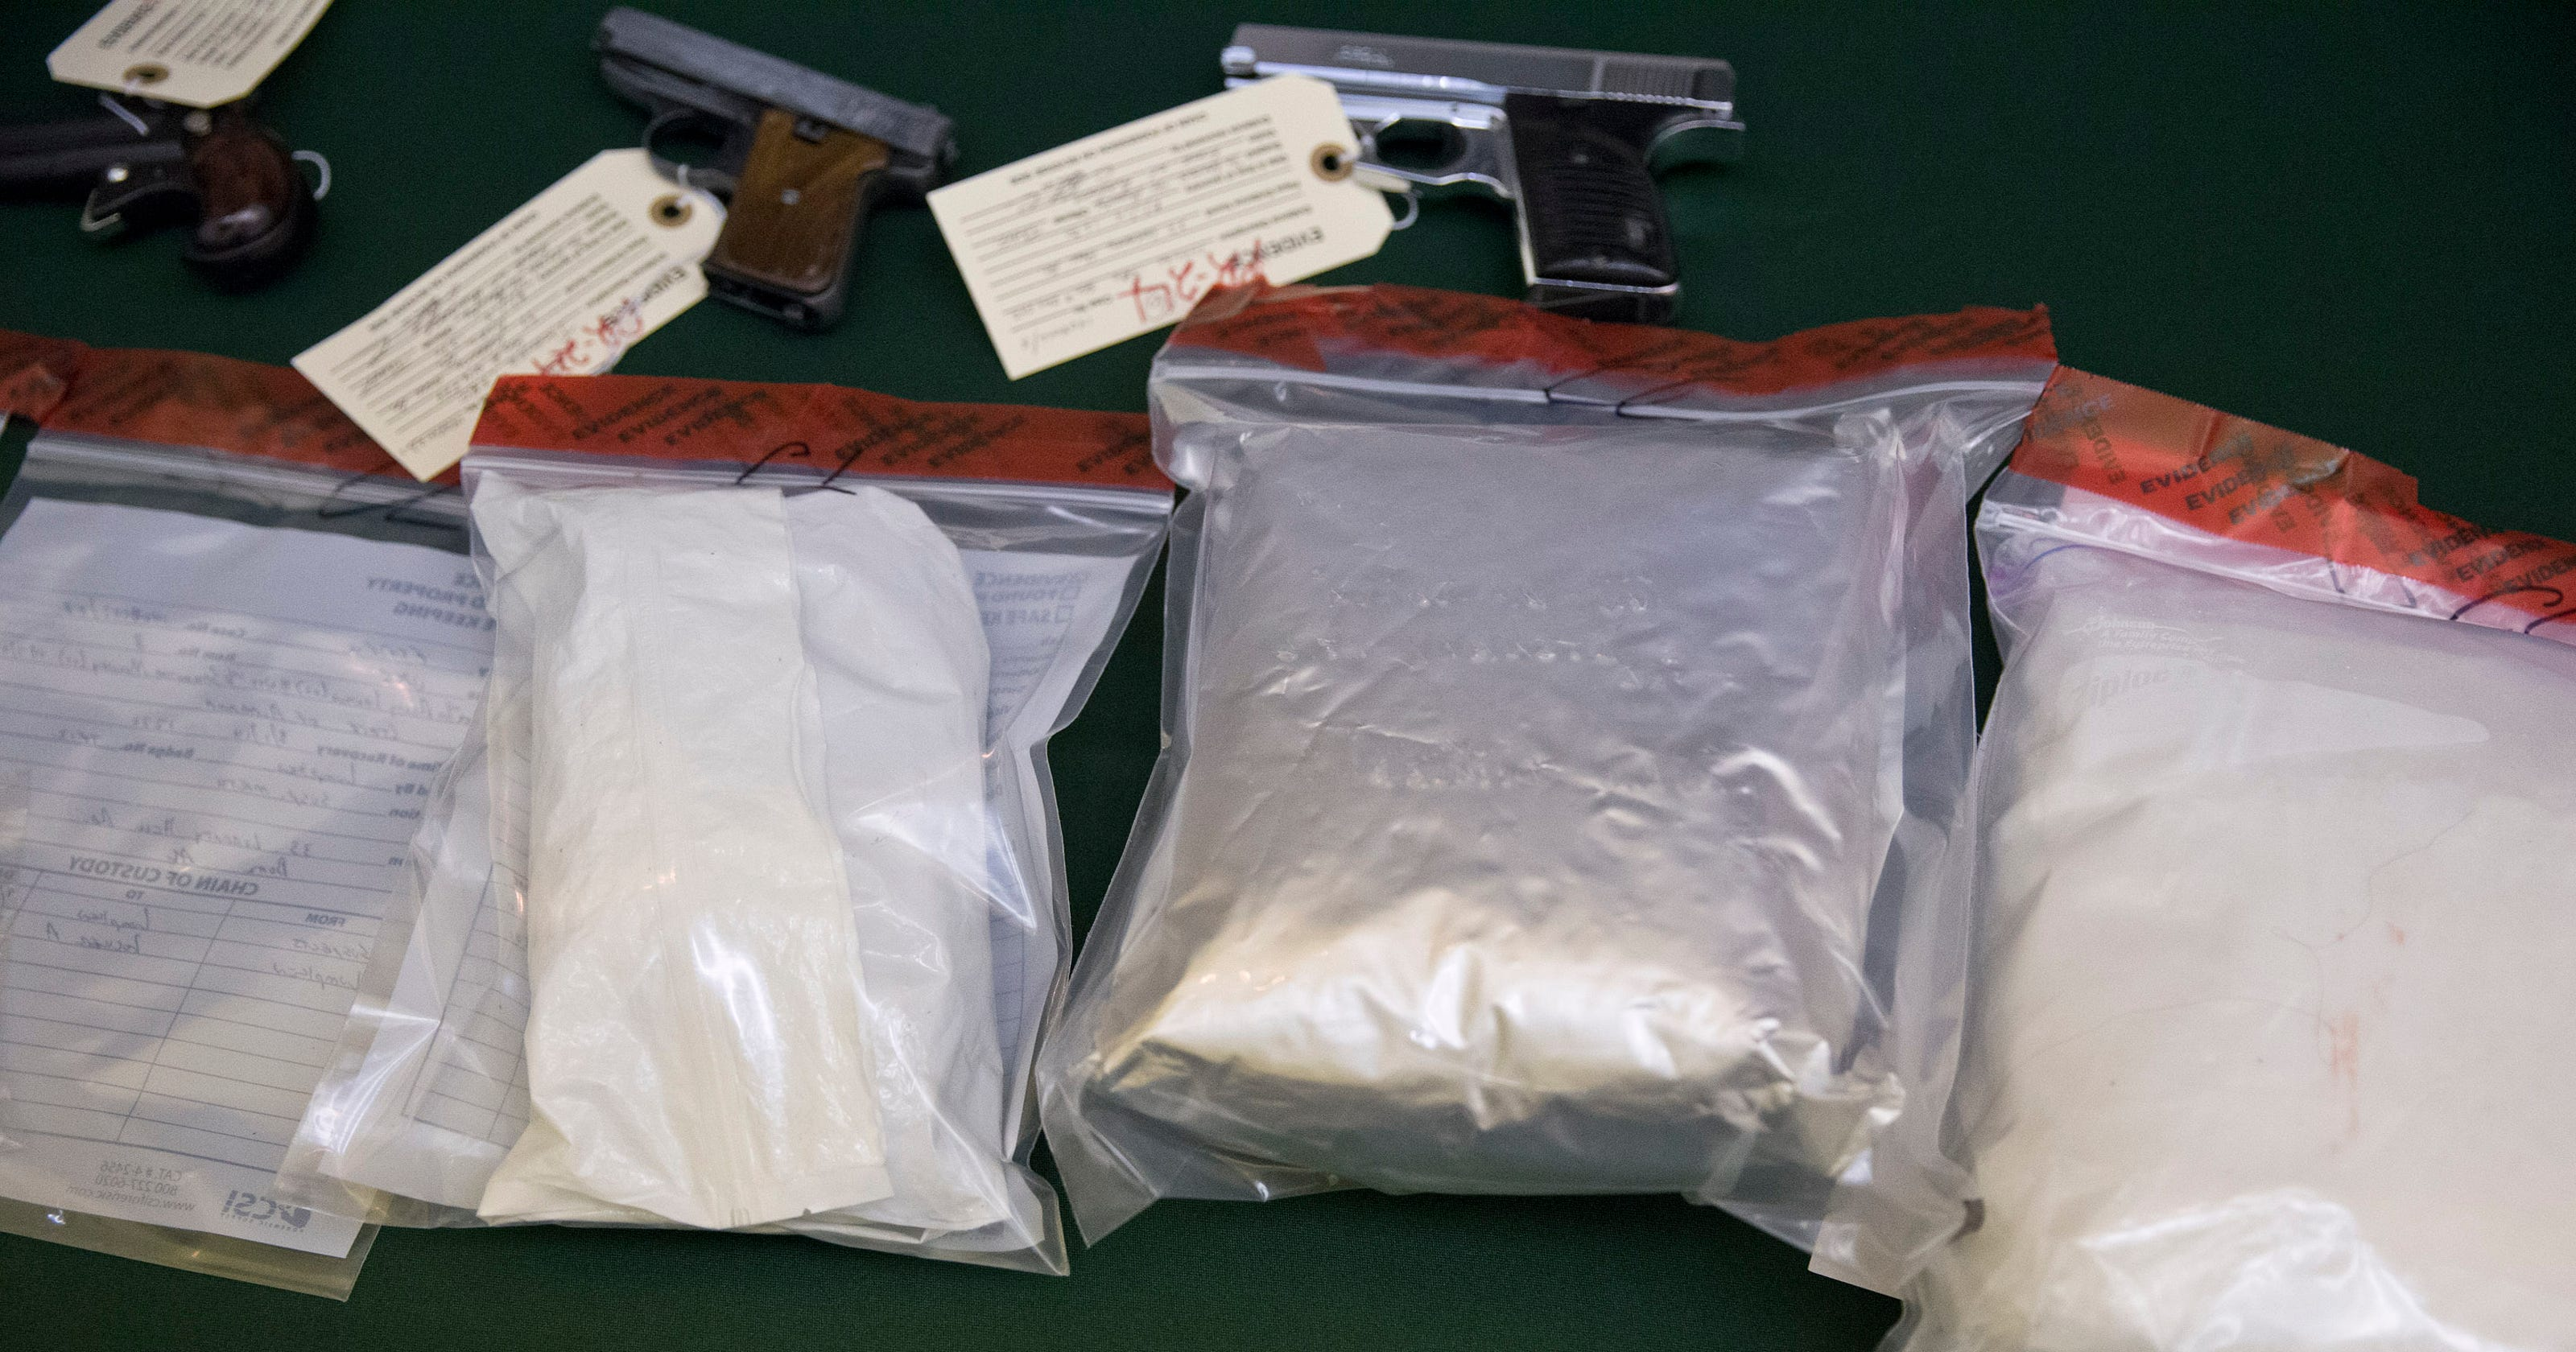 New form of synthetic drug seized in Alabama